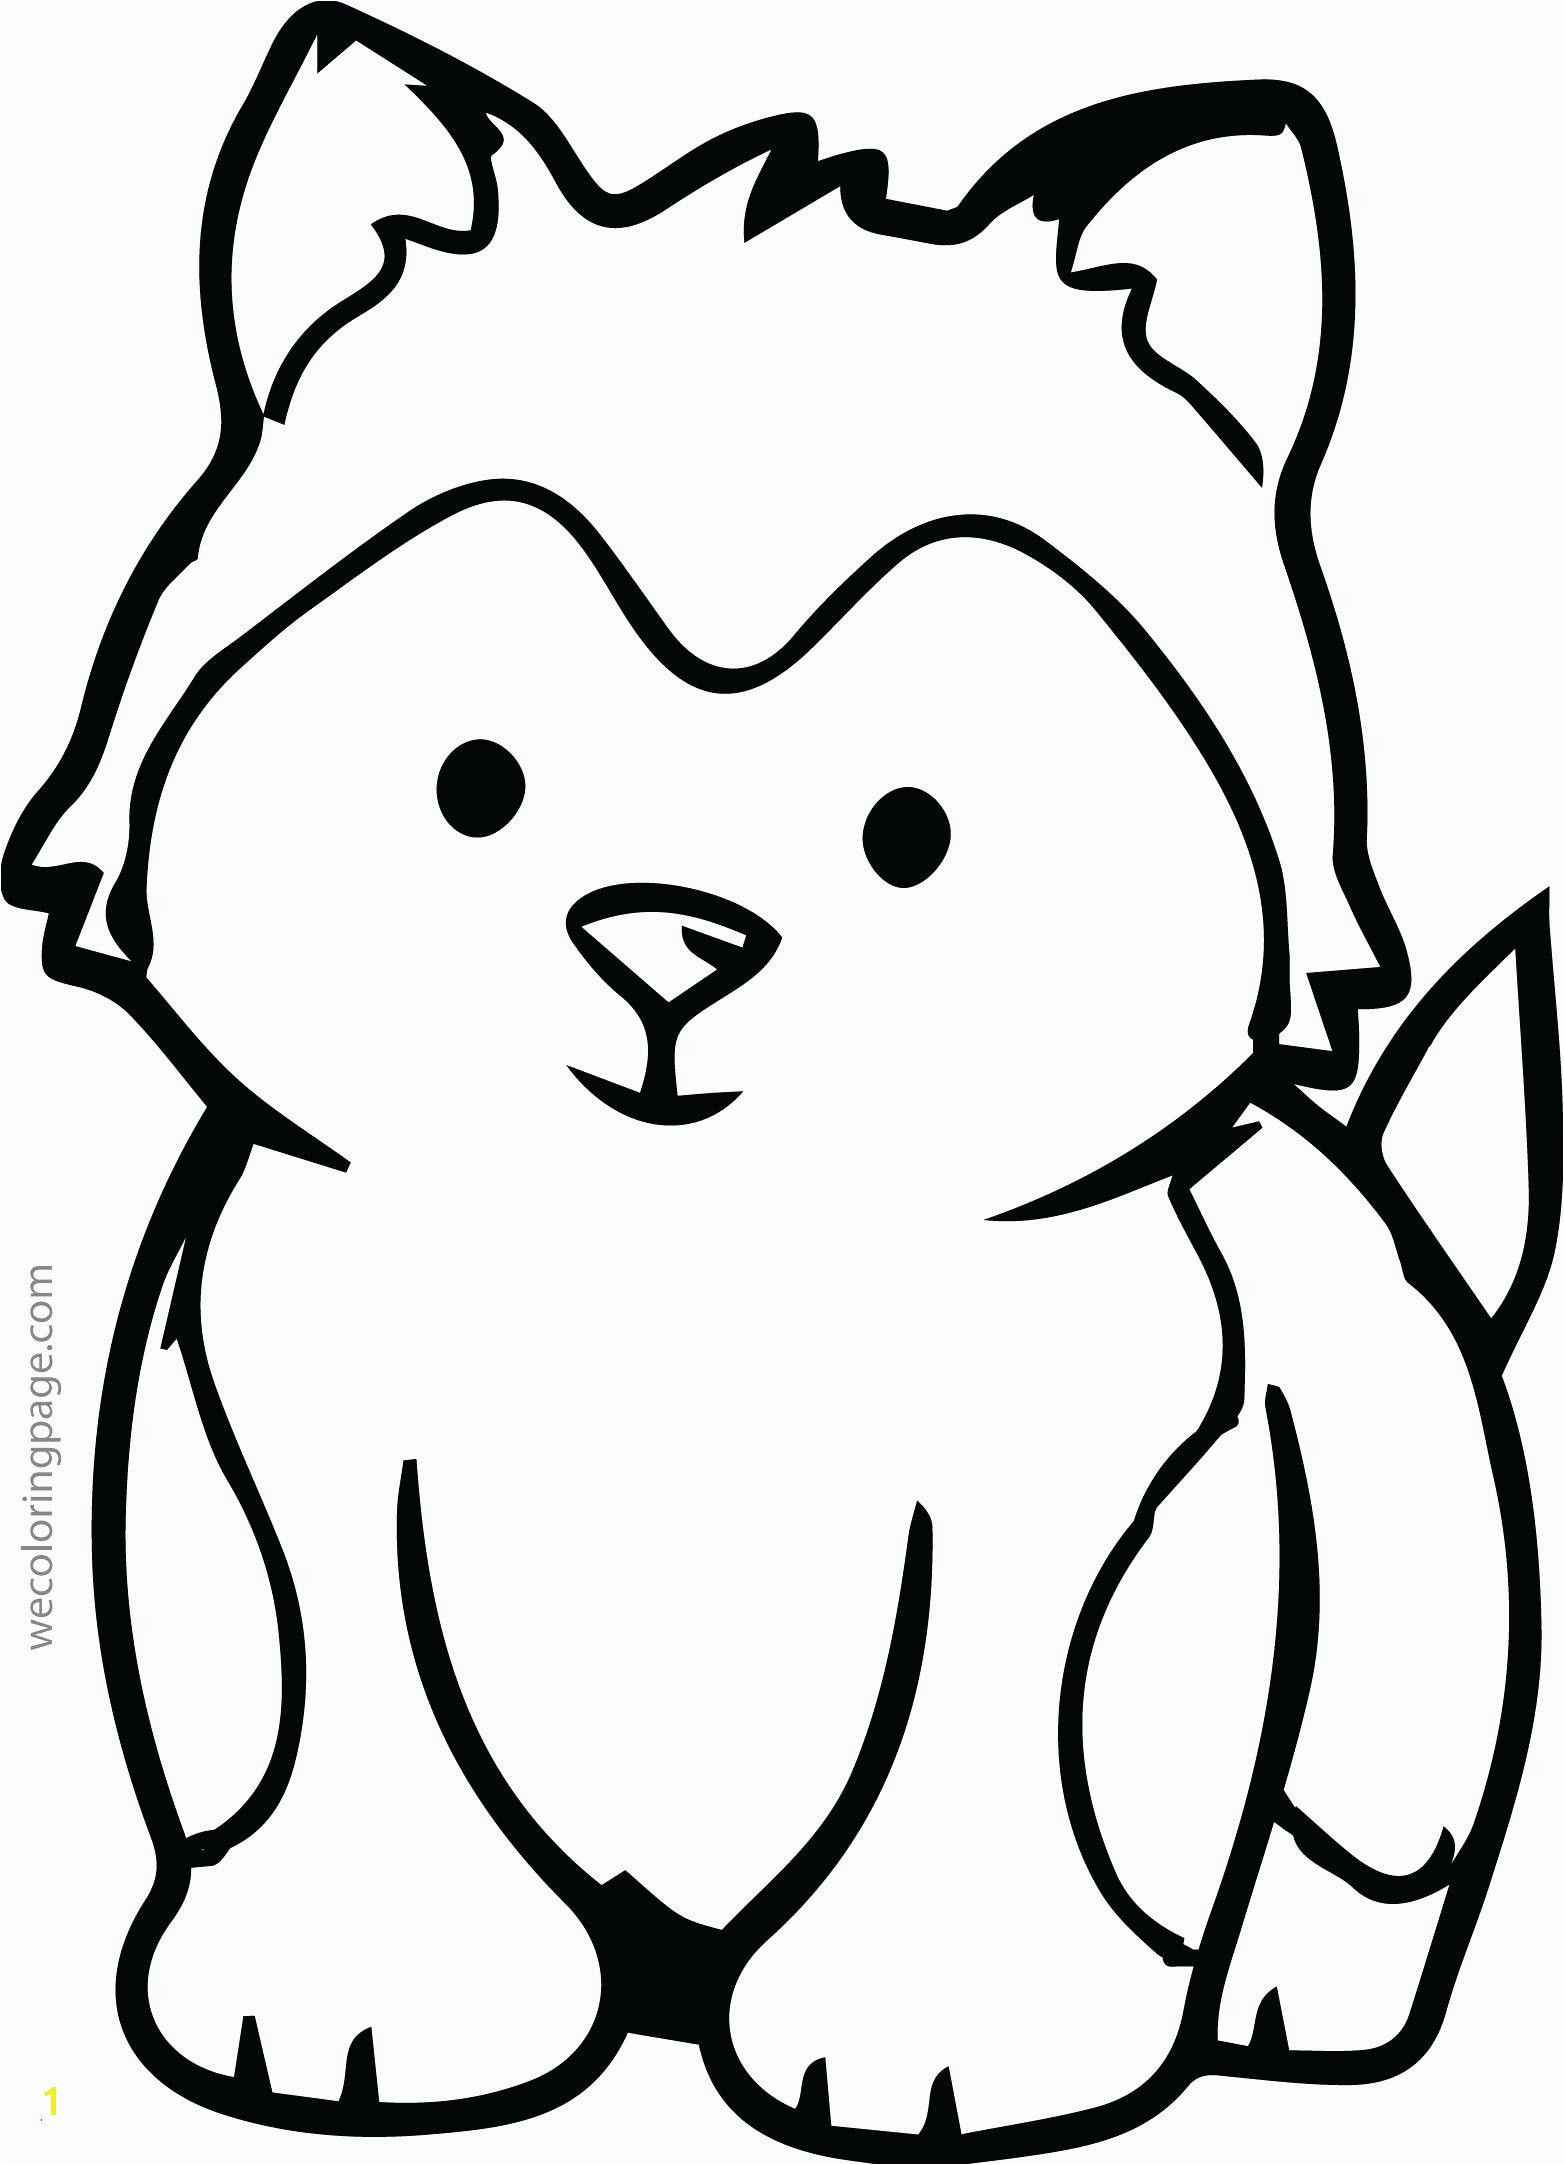 Animal to Print Inspirational Animal Coloring Pages Elegant Husky Coloring 0d Free Coloring Pages